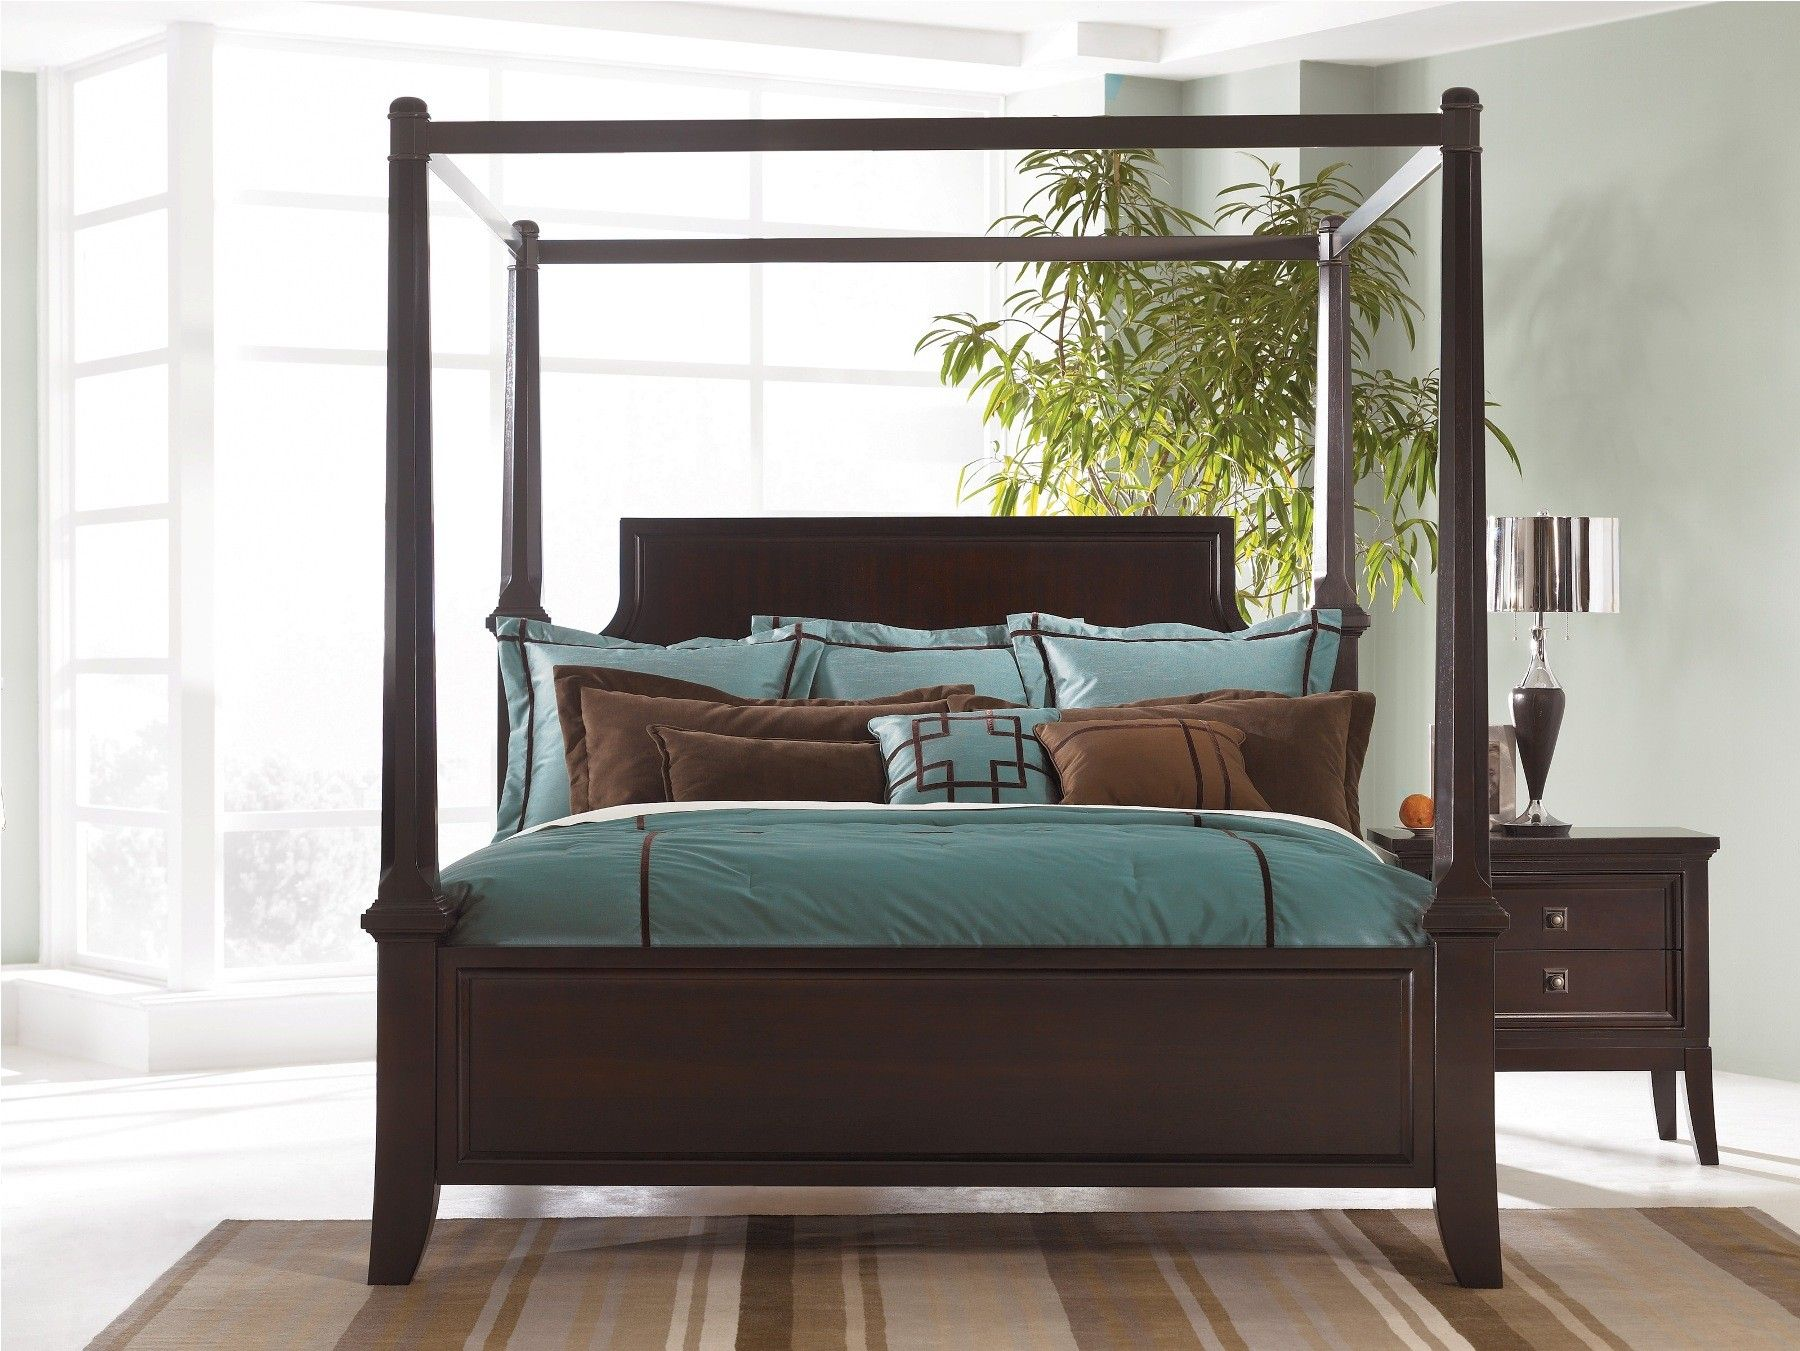 California King Size Platform Bed with canopy